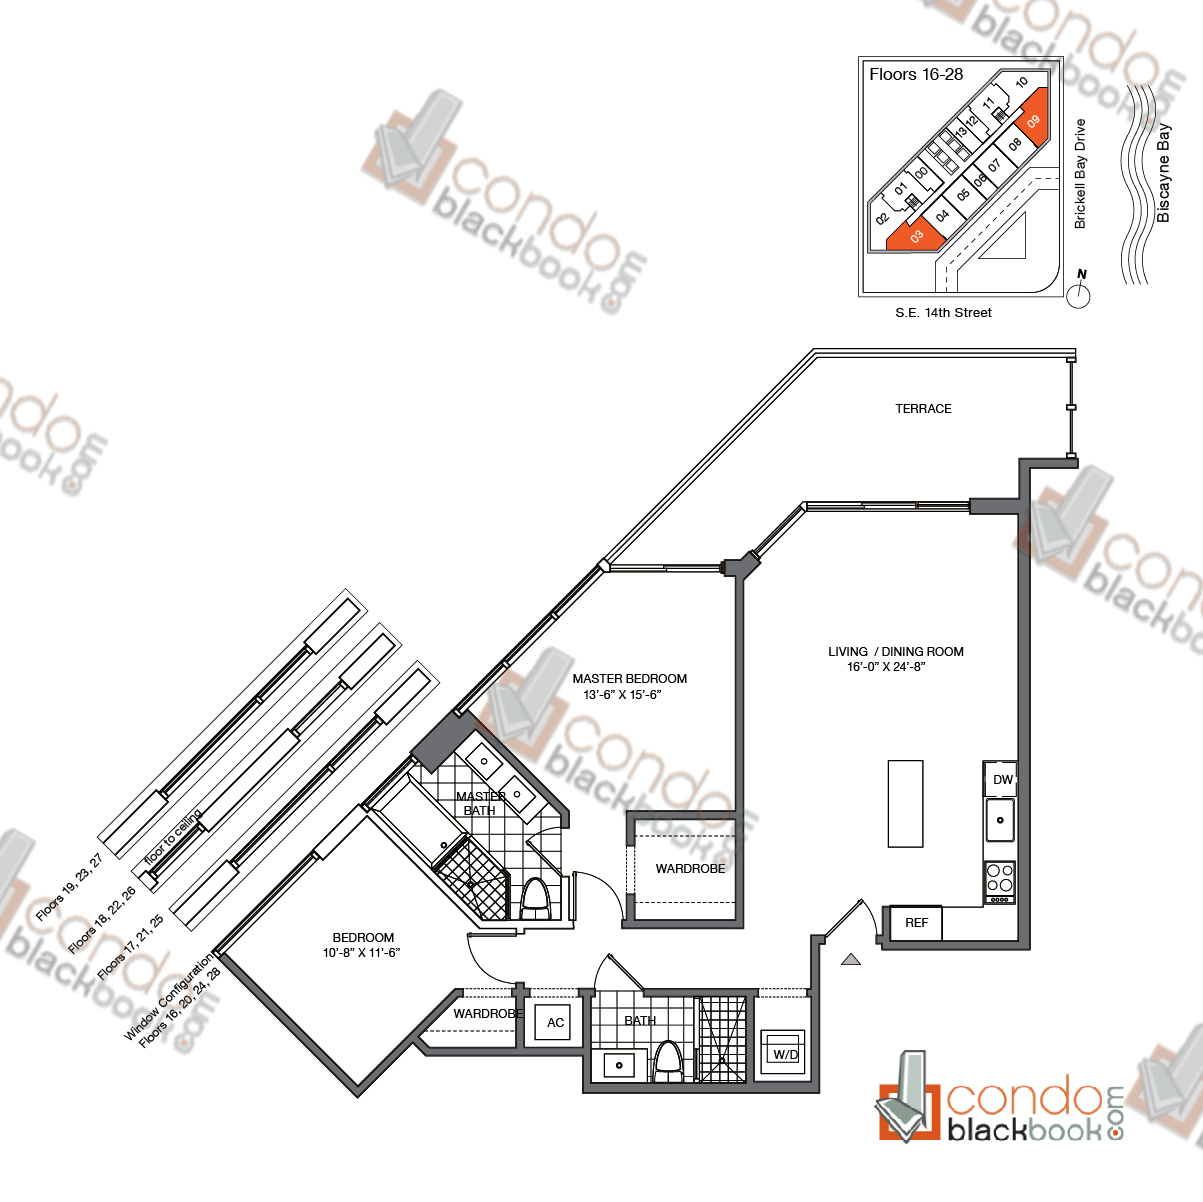 Floor plan for Brickell House Brickell Miami, model B4_16-28, line 03, 09, 2/2 bedrooms, 1,139 sq ft